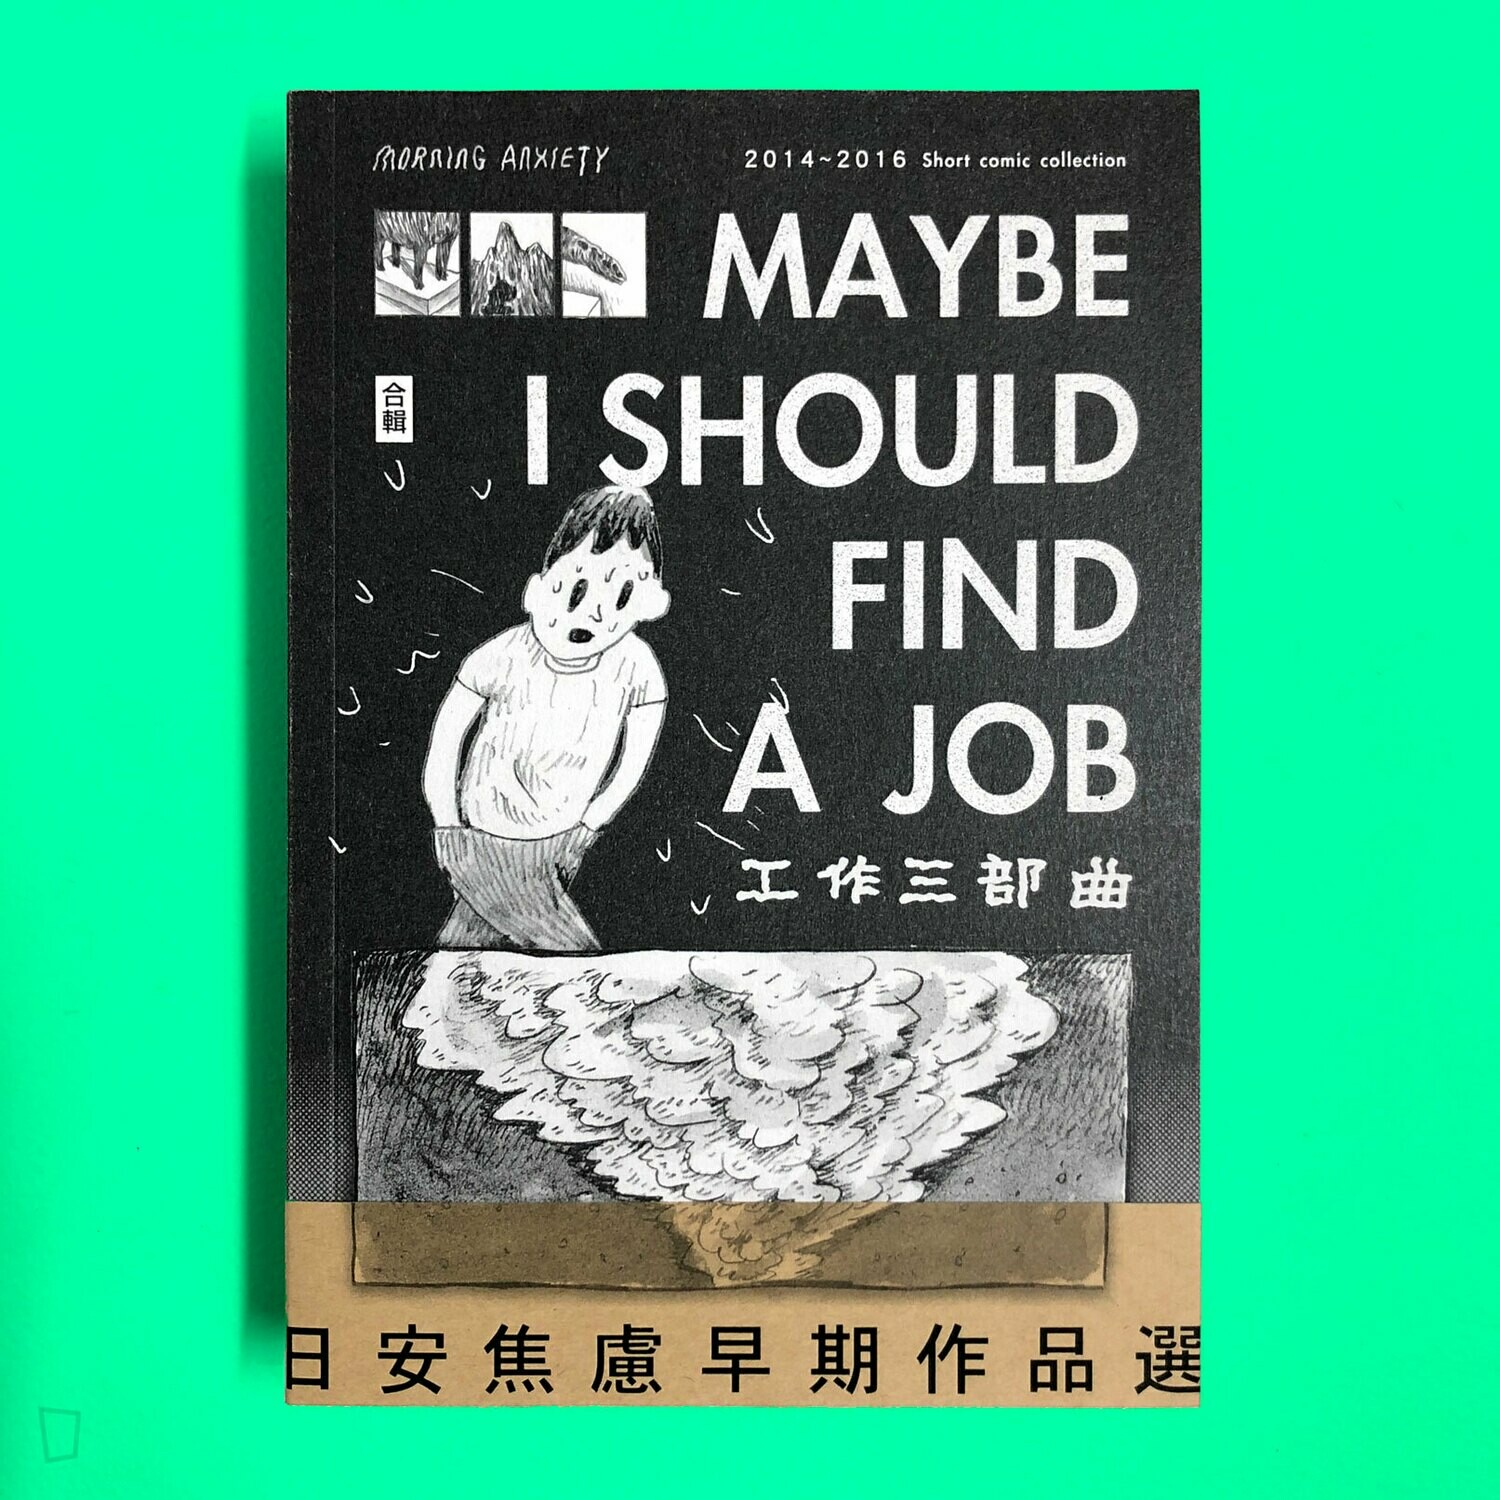 日安焦慮《工作三部曲 MAYBE I SHOULD FIND A JOB》